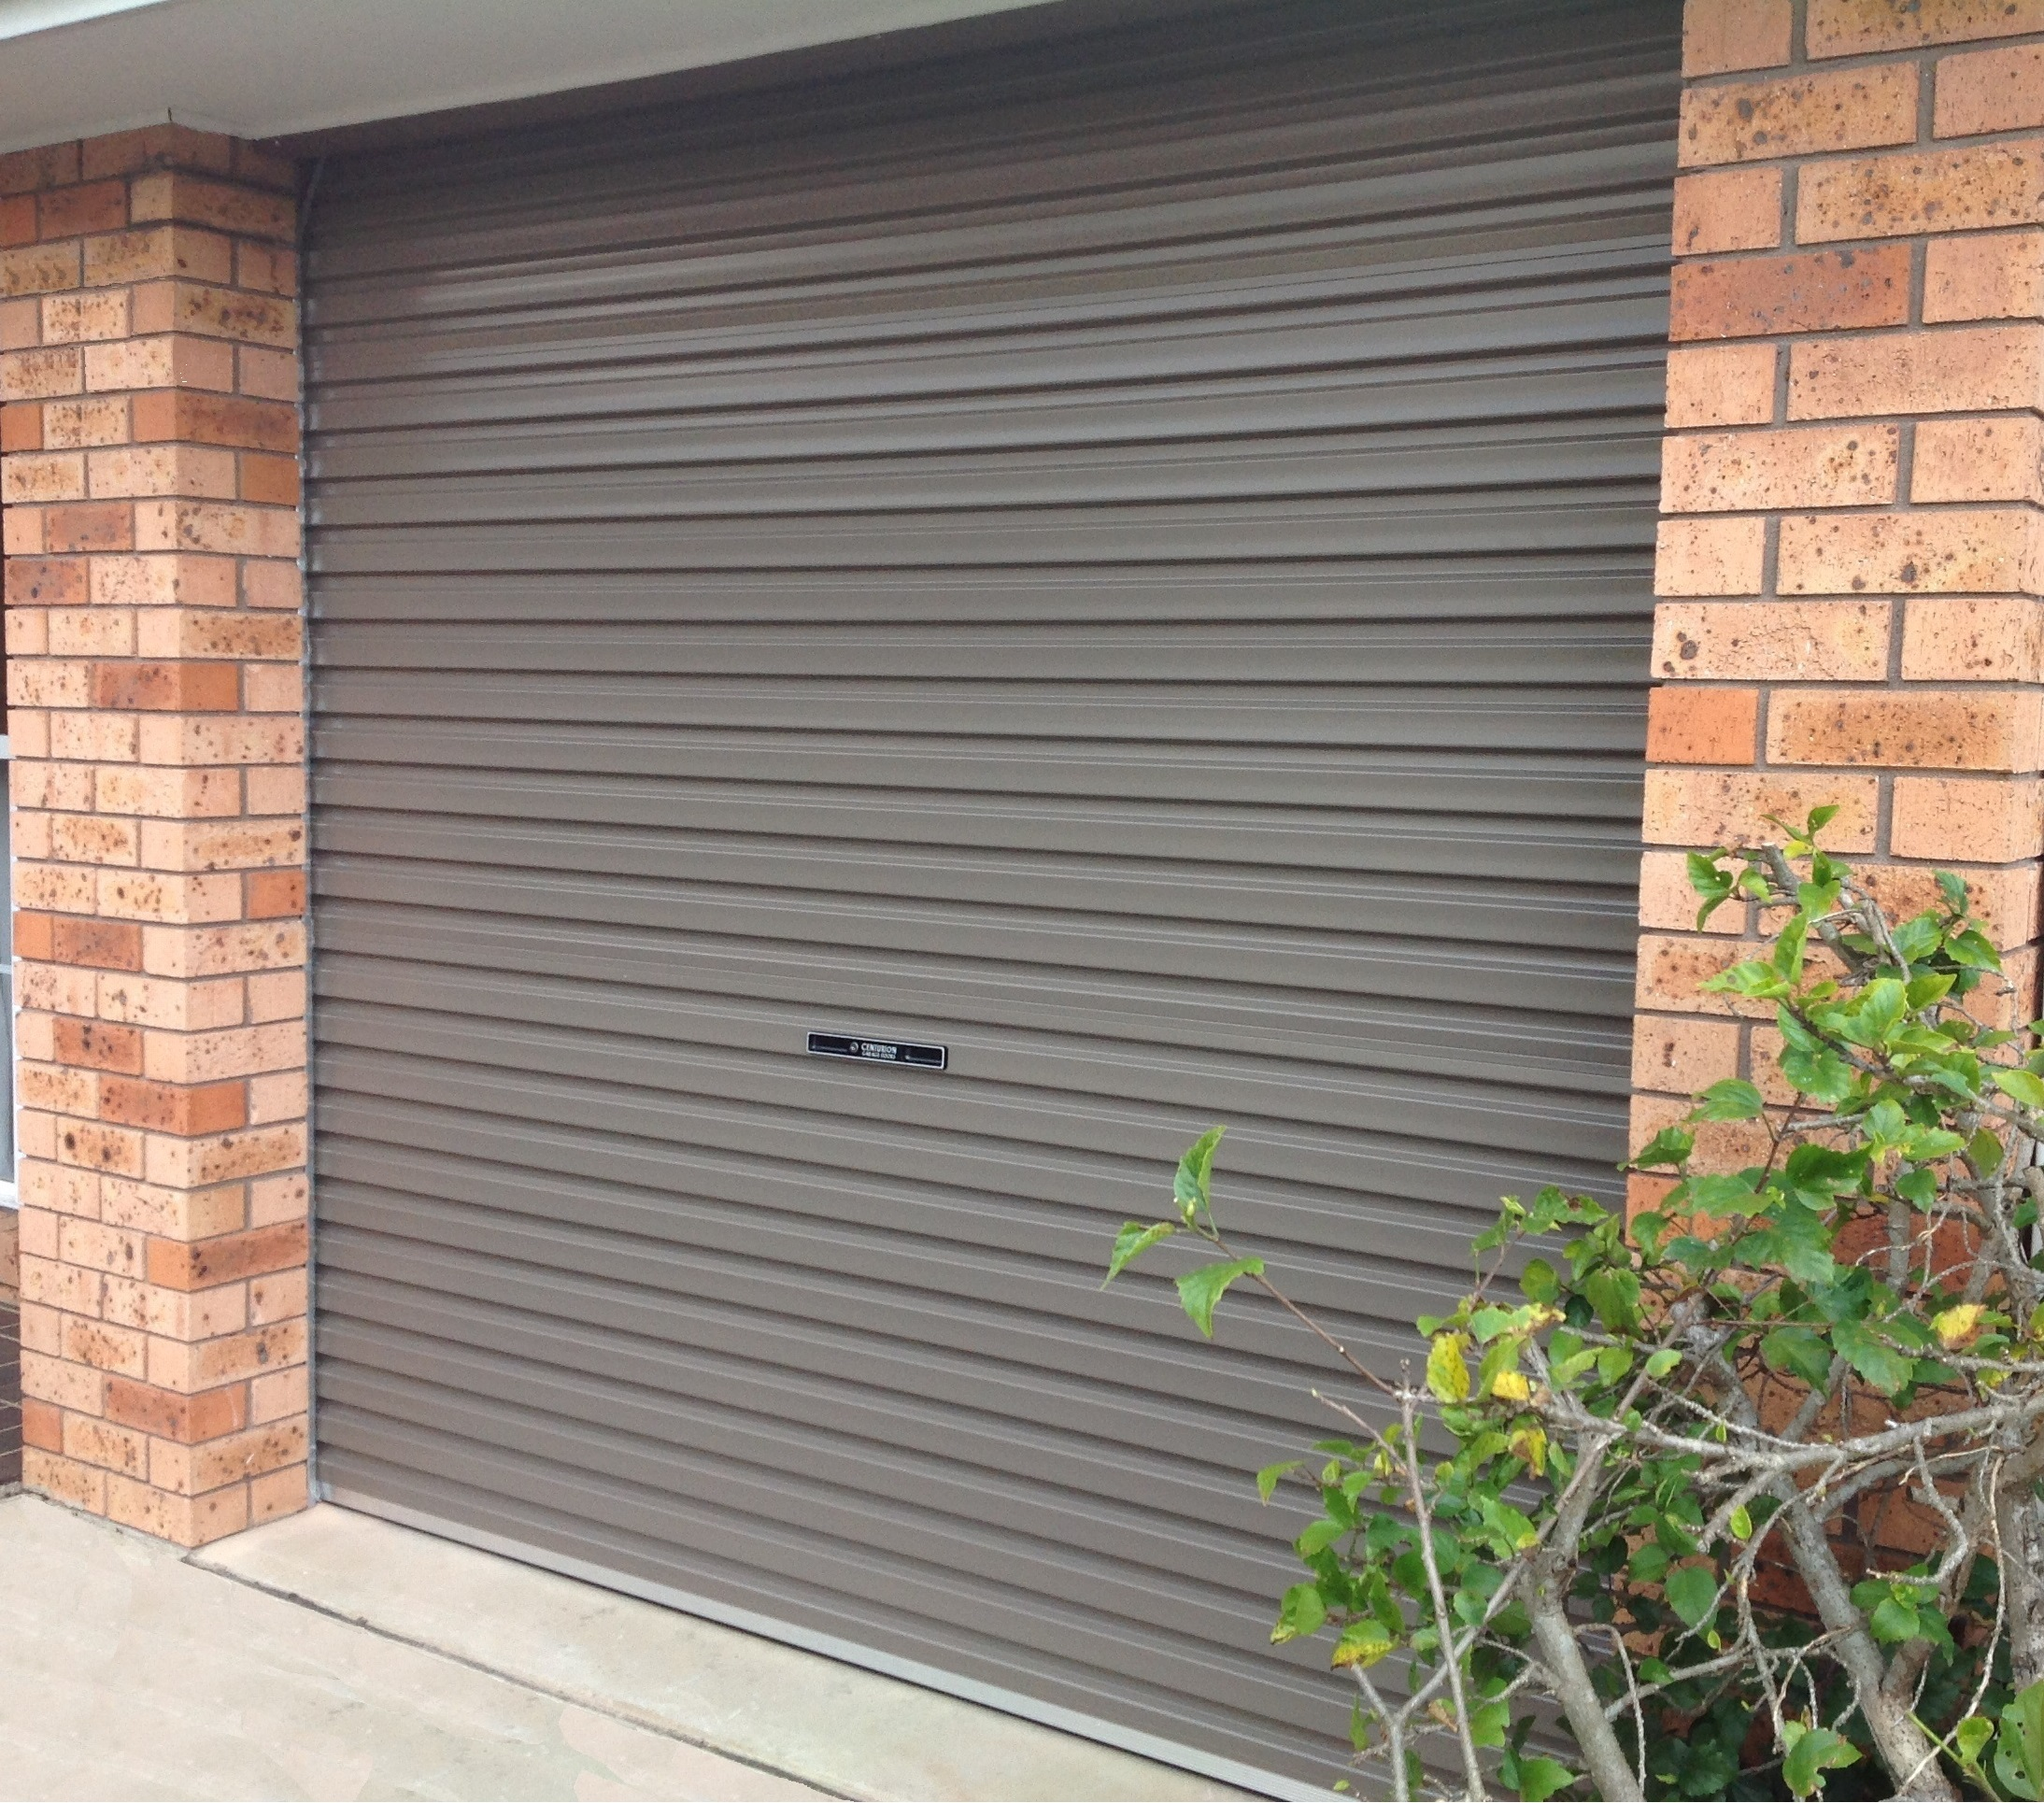 Residential Roller Door (one click on image to enlarge)